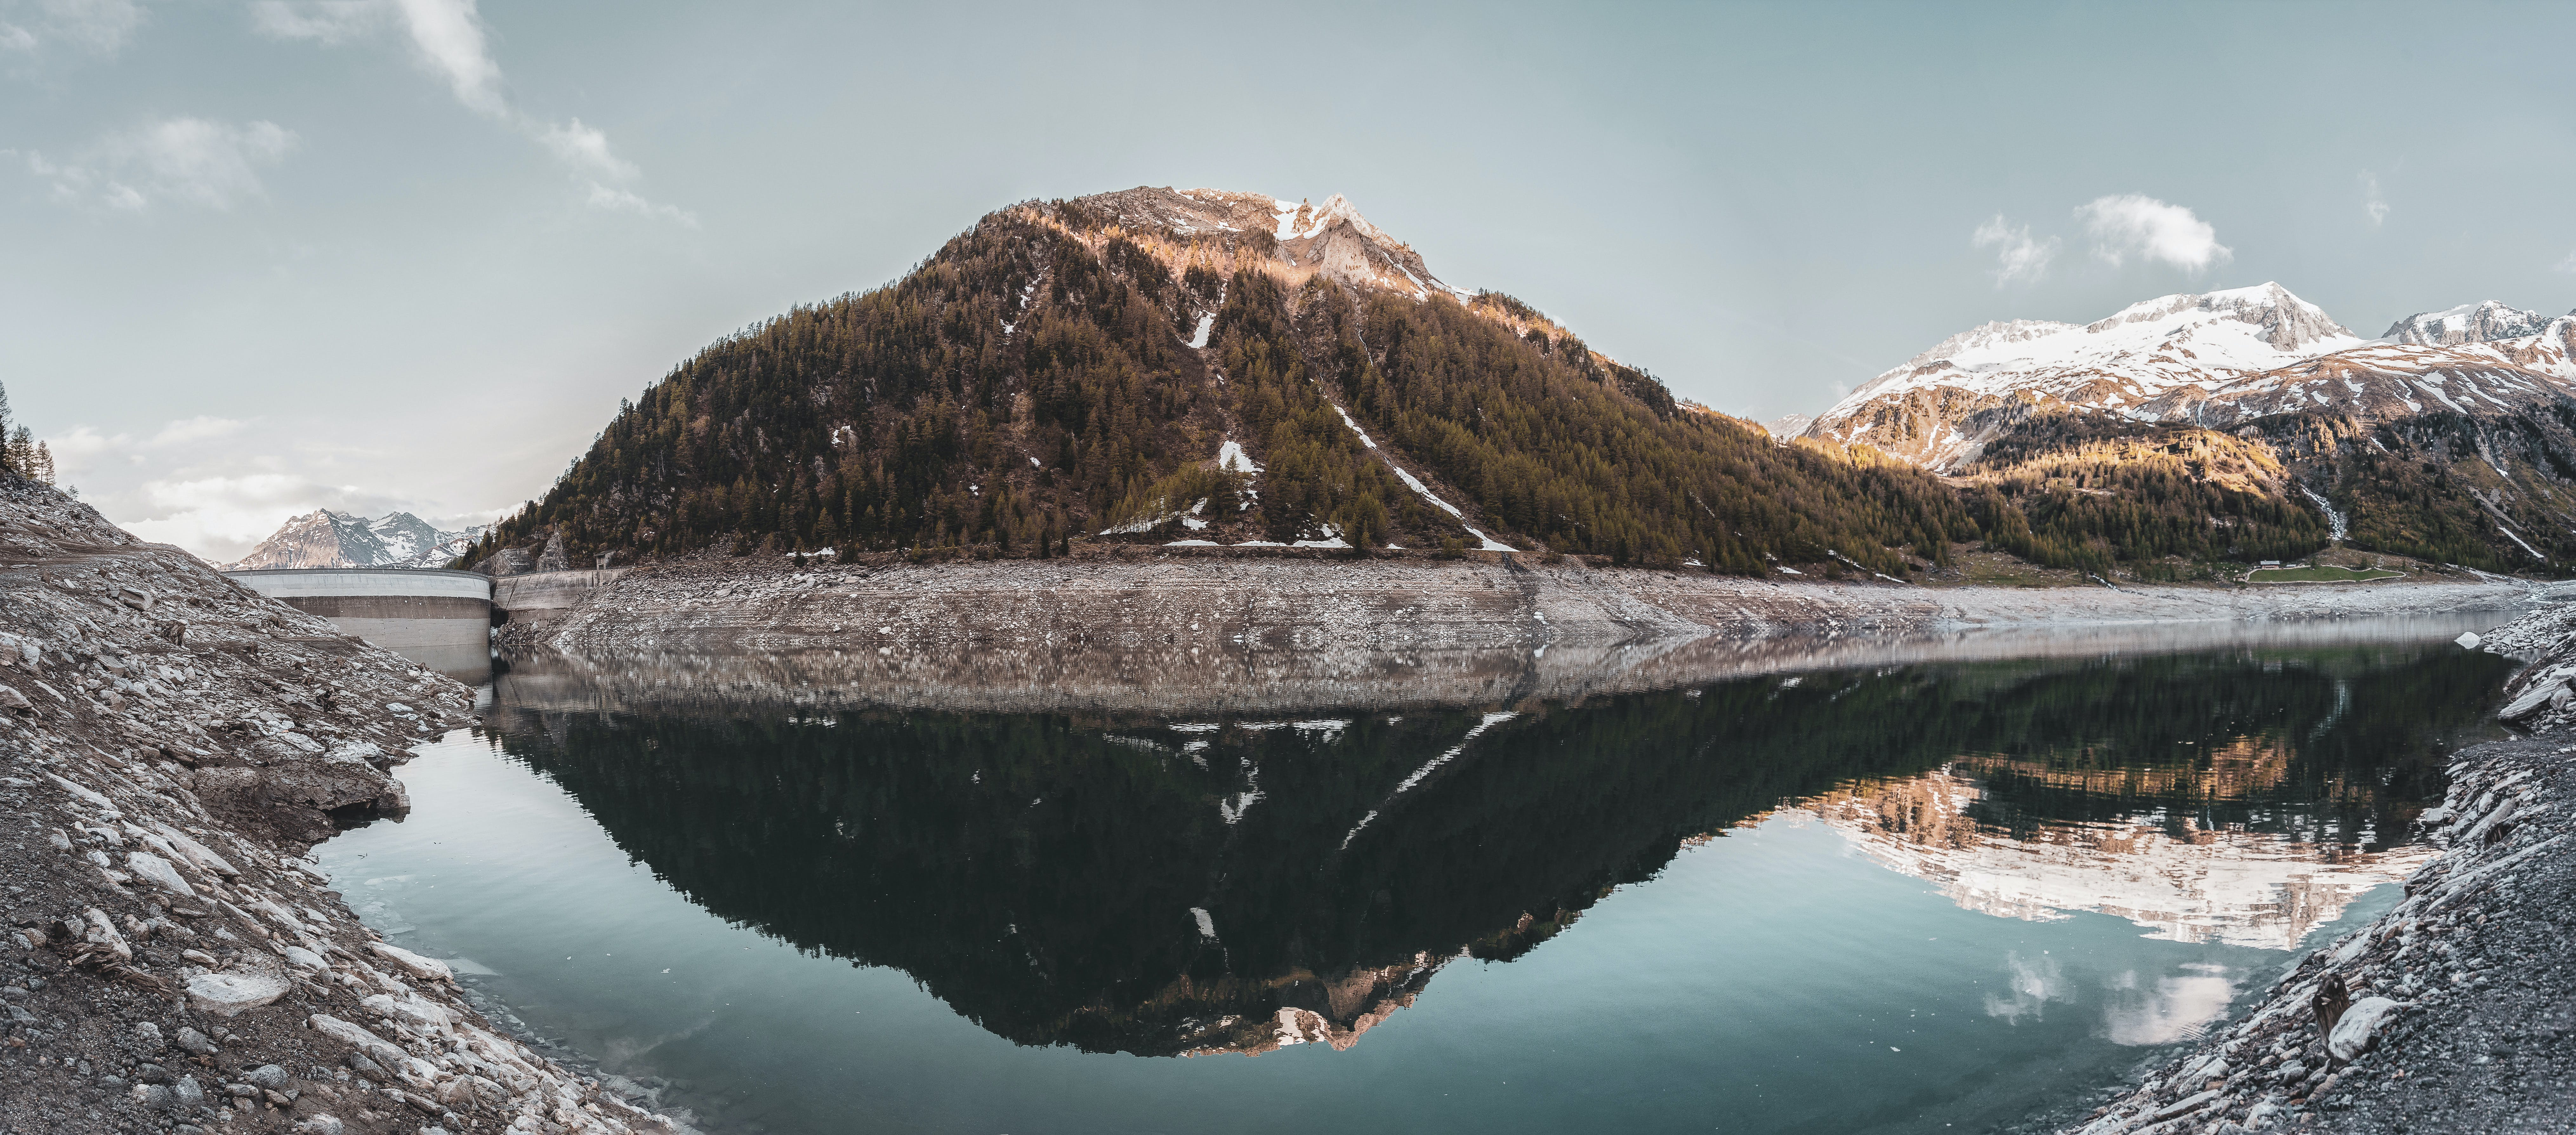 Green Covered Mountain Reflected on Calm Water Under Clear Sky Landscape Photo